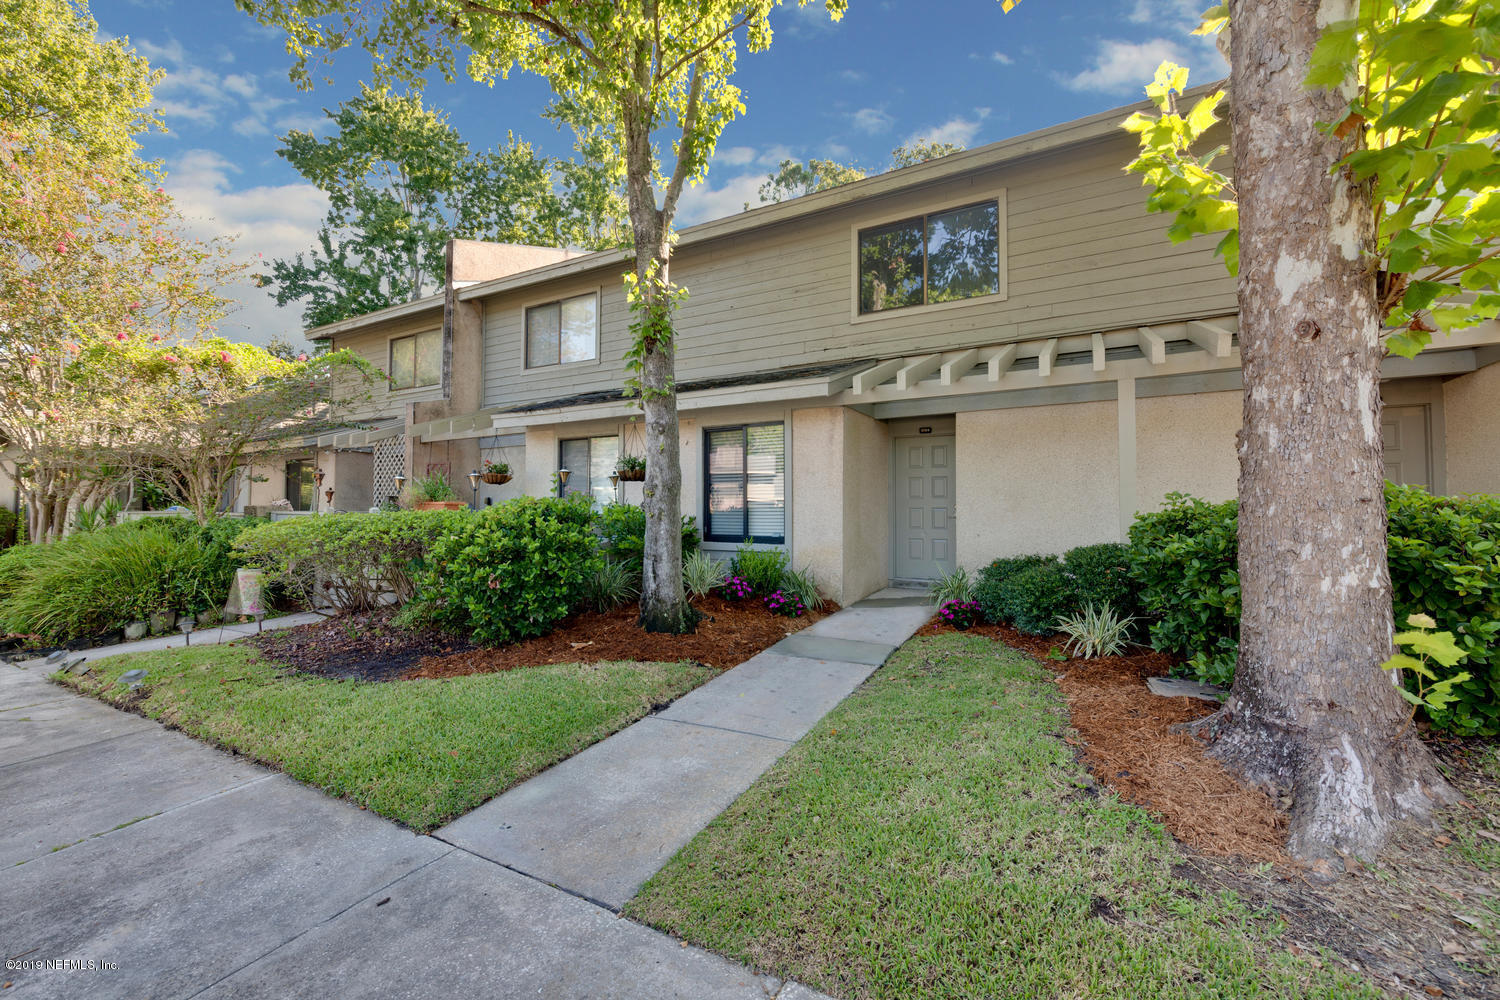 7701 BAYMEADOWS CIR JACKSONVILLE - 2